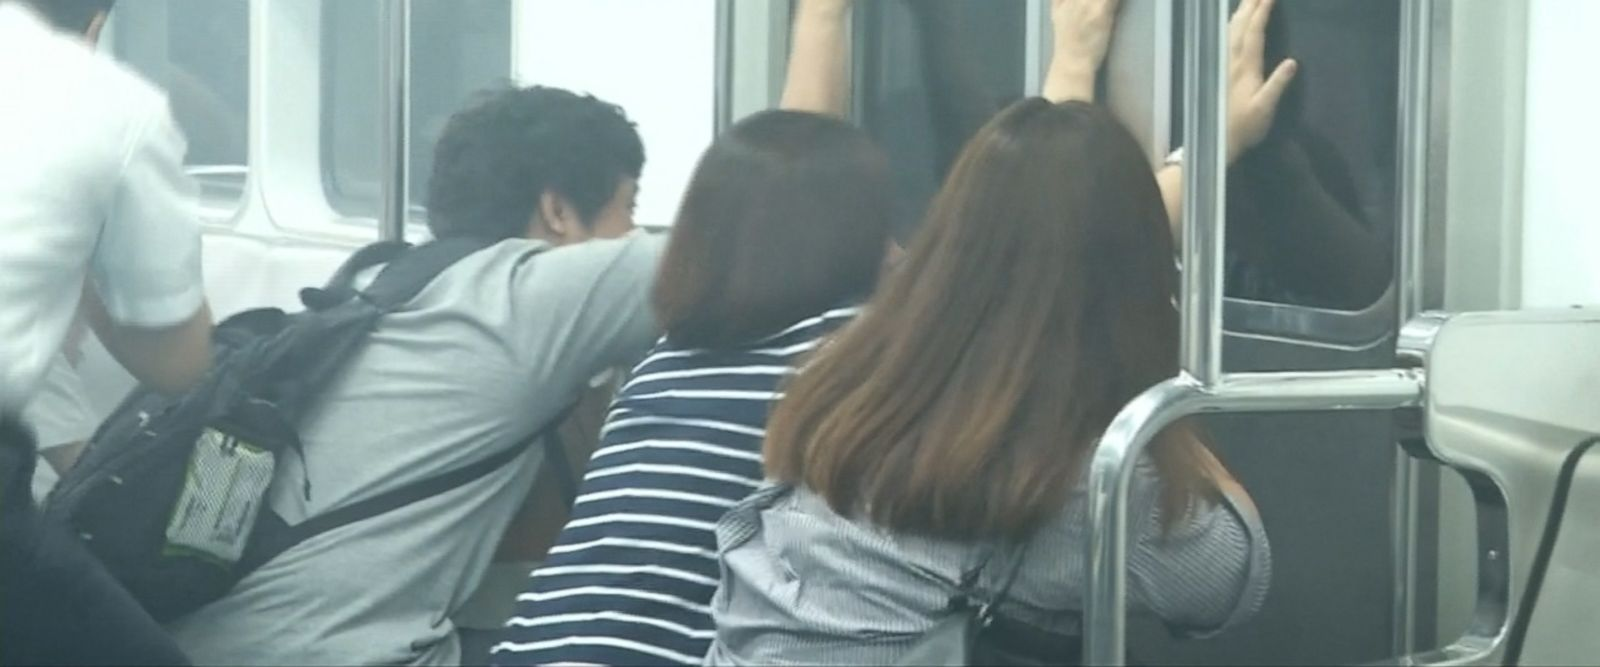 Seoul Metro conducted an anti-terror drill involving police and emergency workers which used various scenarios, such as poison gas being released in a subway car.